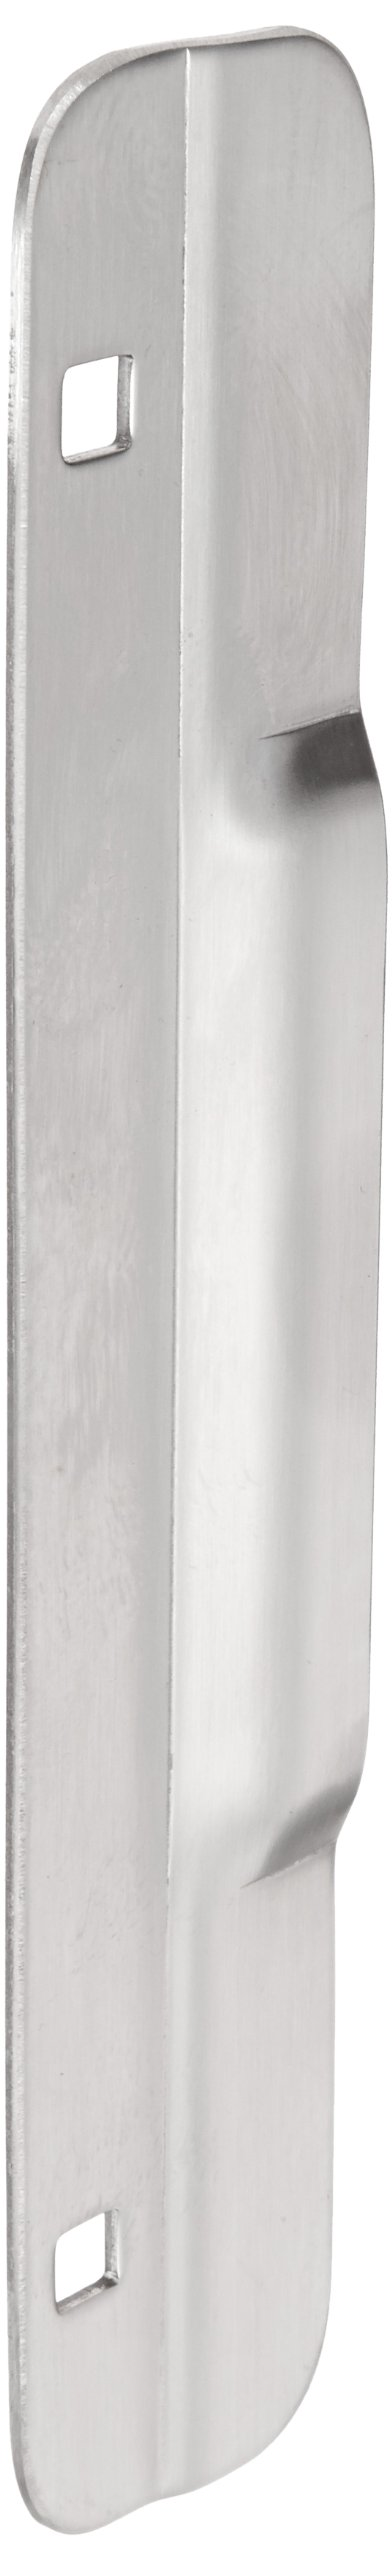 Rockwood 321.32D Stainless Steel Mortise Latch Protector, 1-1/2'' Width x 10'' Height, 0.105'' Thickness, Satin Finish